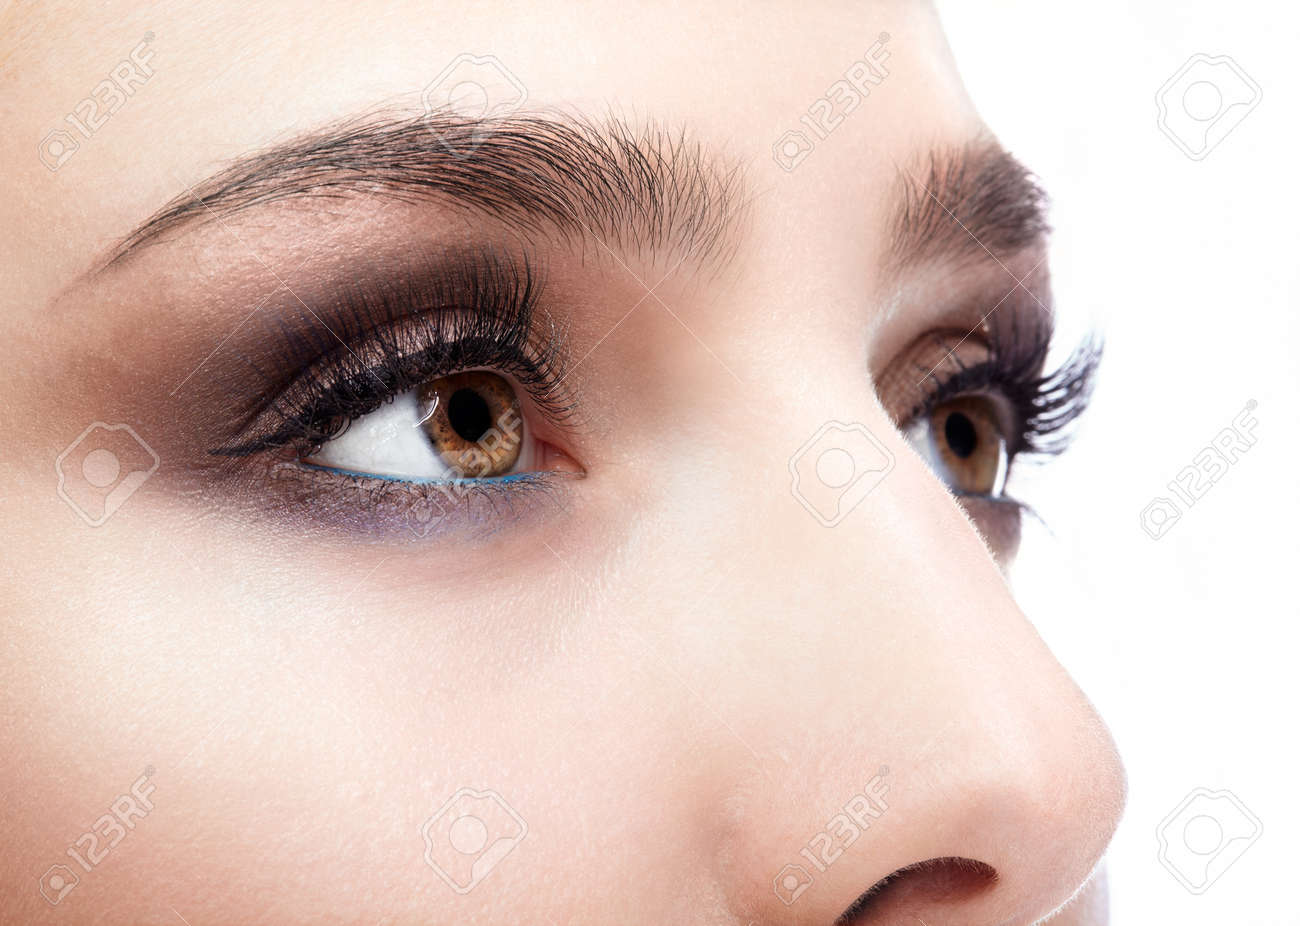 Closeup shot of female eye with day makeup in aqua Limpet Shell color eye shadows and Snorkel Blue colour liner - 50255047